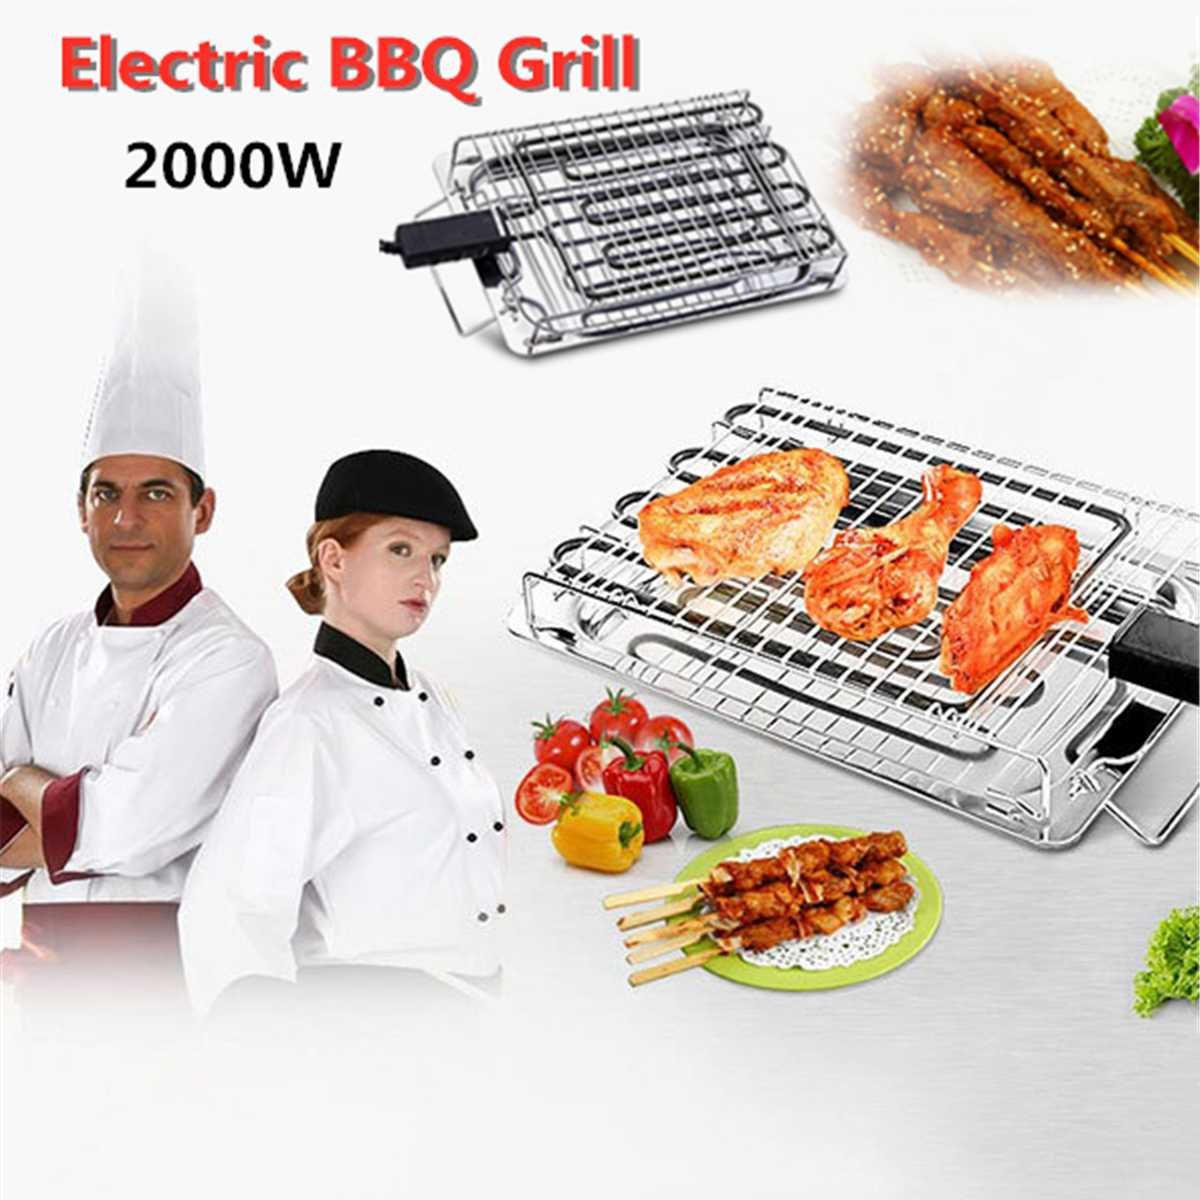 220V 2000W Electric BBQ Grills for 4-6 People Charcoal Grill Stainless Steel BBQ Grills Portable Heating Barbecue Tools220V 2000W Electric BBQ Grills for 4-6 People Charcoal Grill Stainless Steel BBQ Grills Portable Heating Barbecue Tools